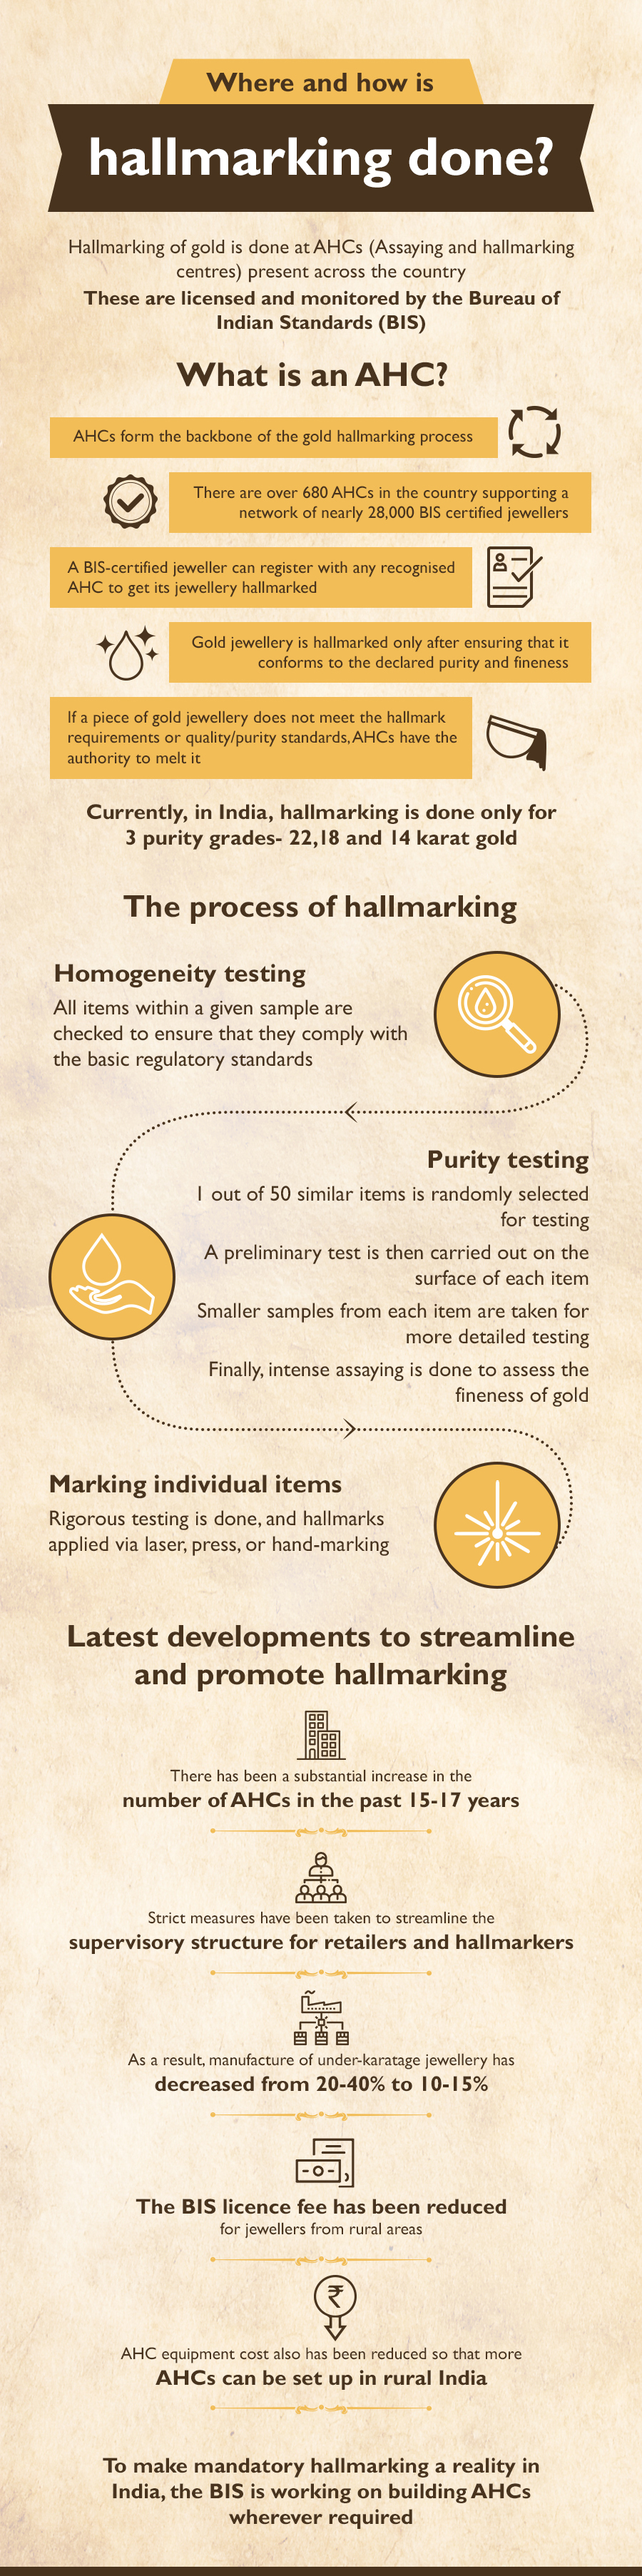 Details about where and how gold hallmarking is done